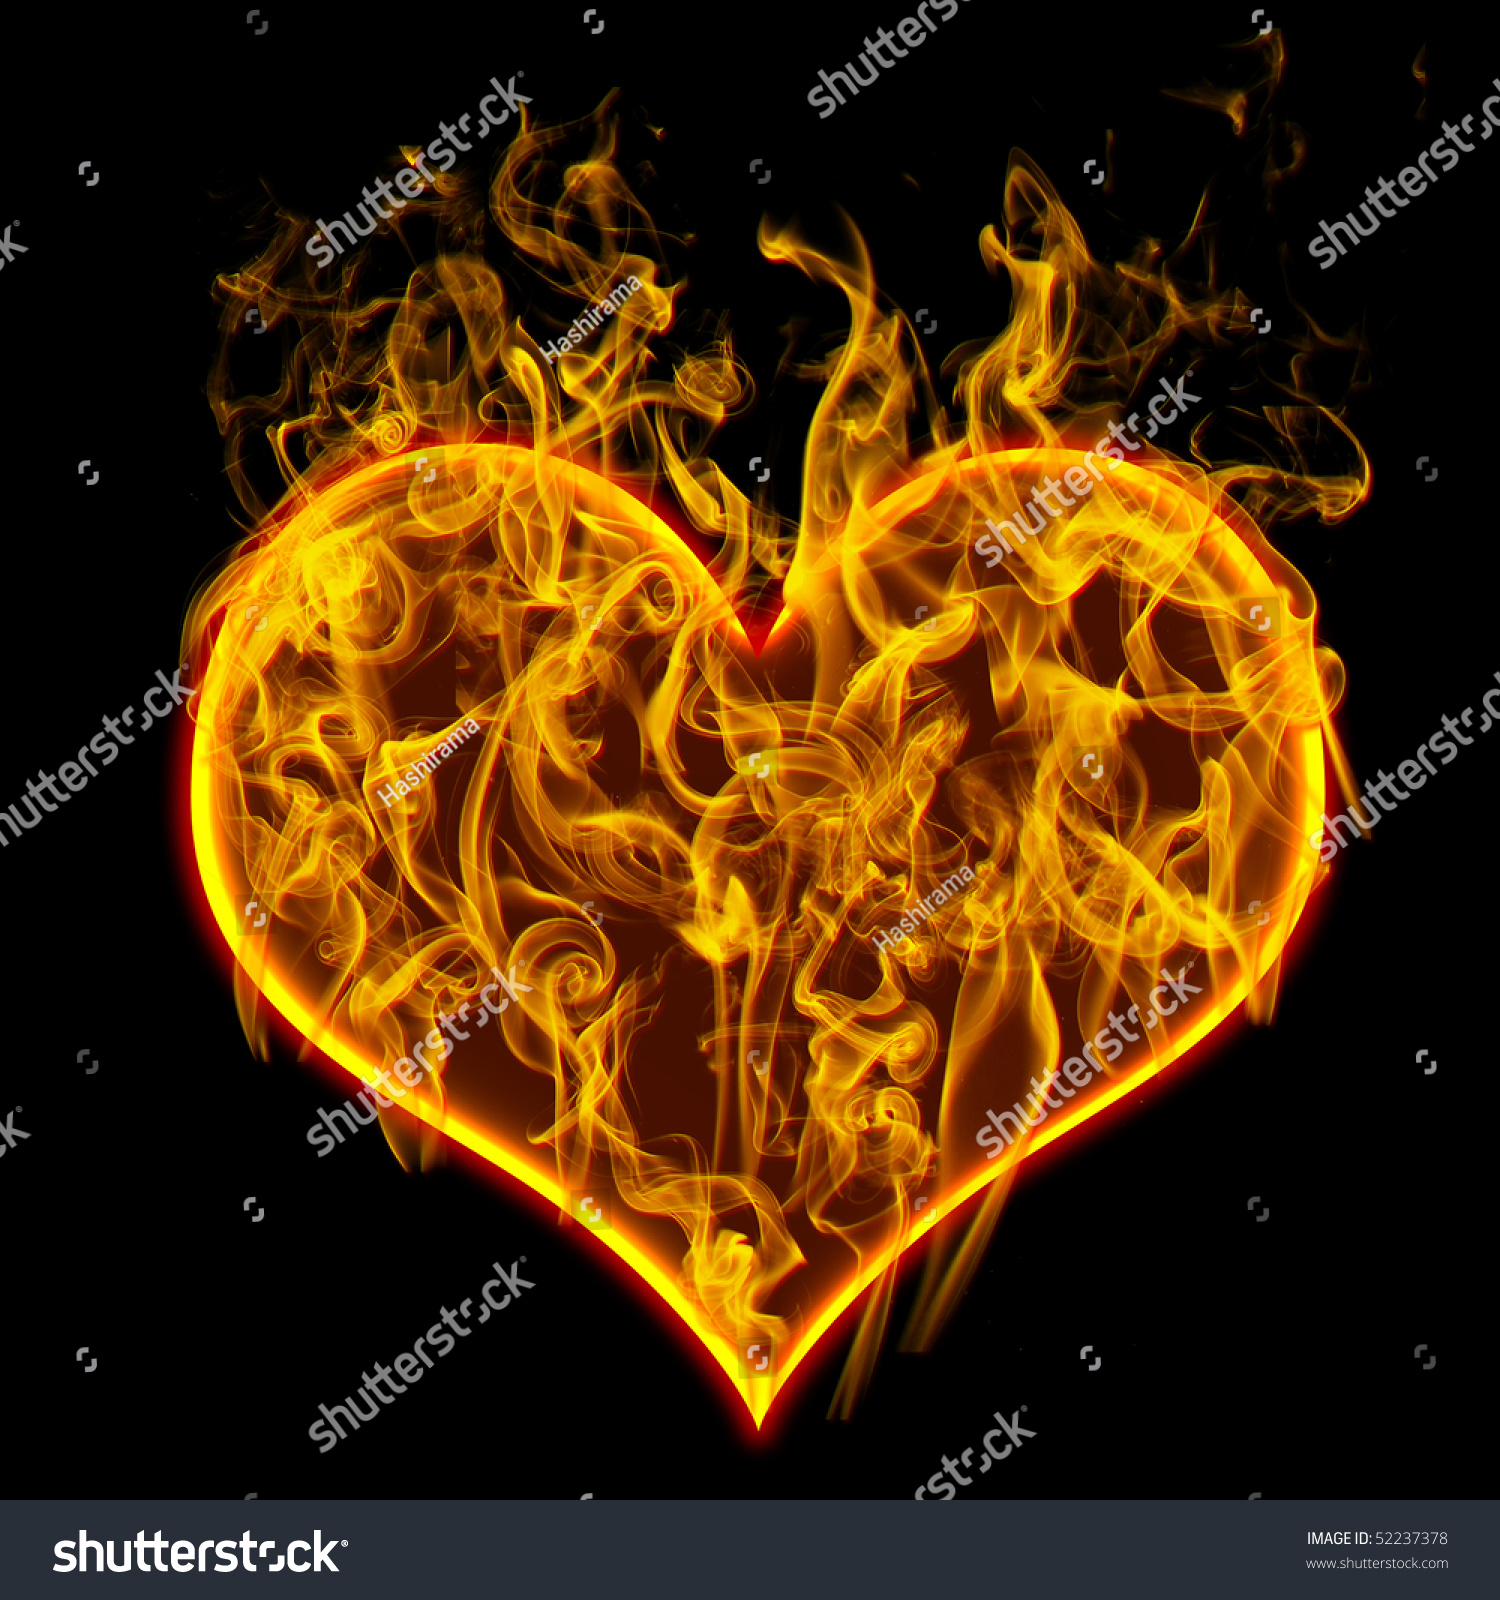 Ardent heart check all fire letters stock illustration 52237378 ardent heart check all fire letters in my portfolio thecheapjerseys Images